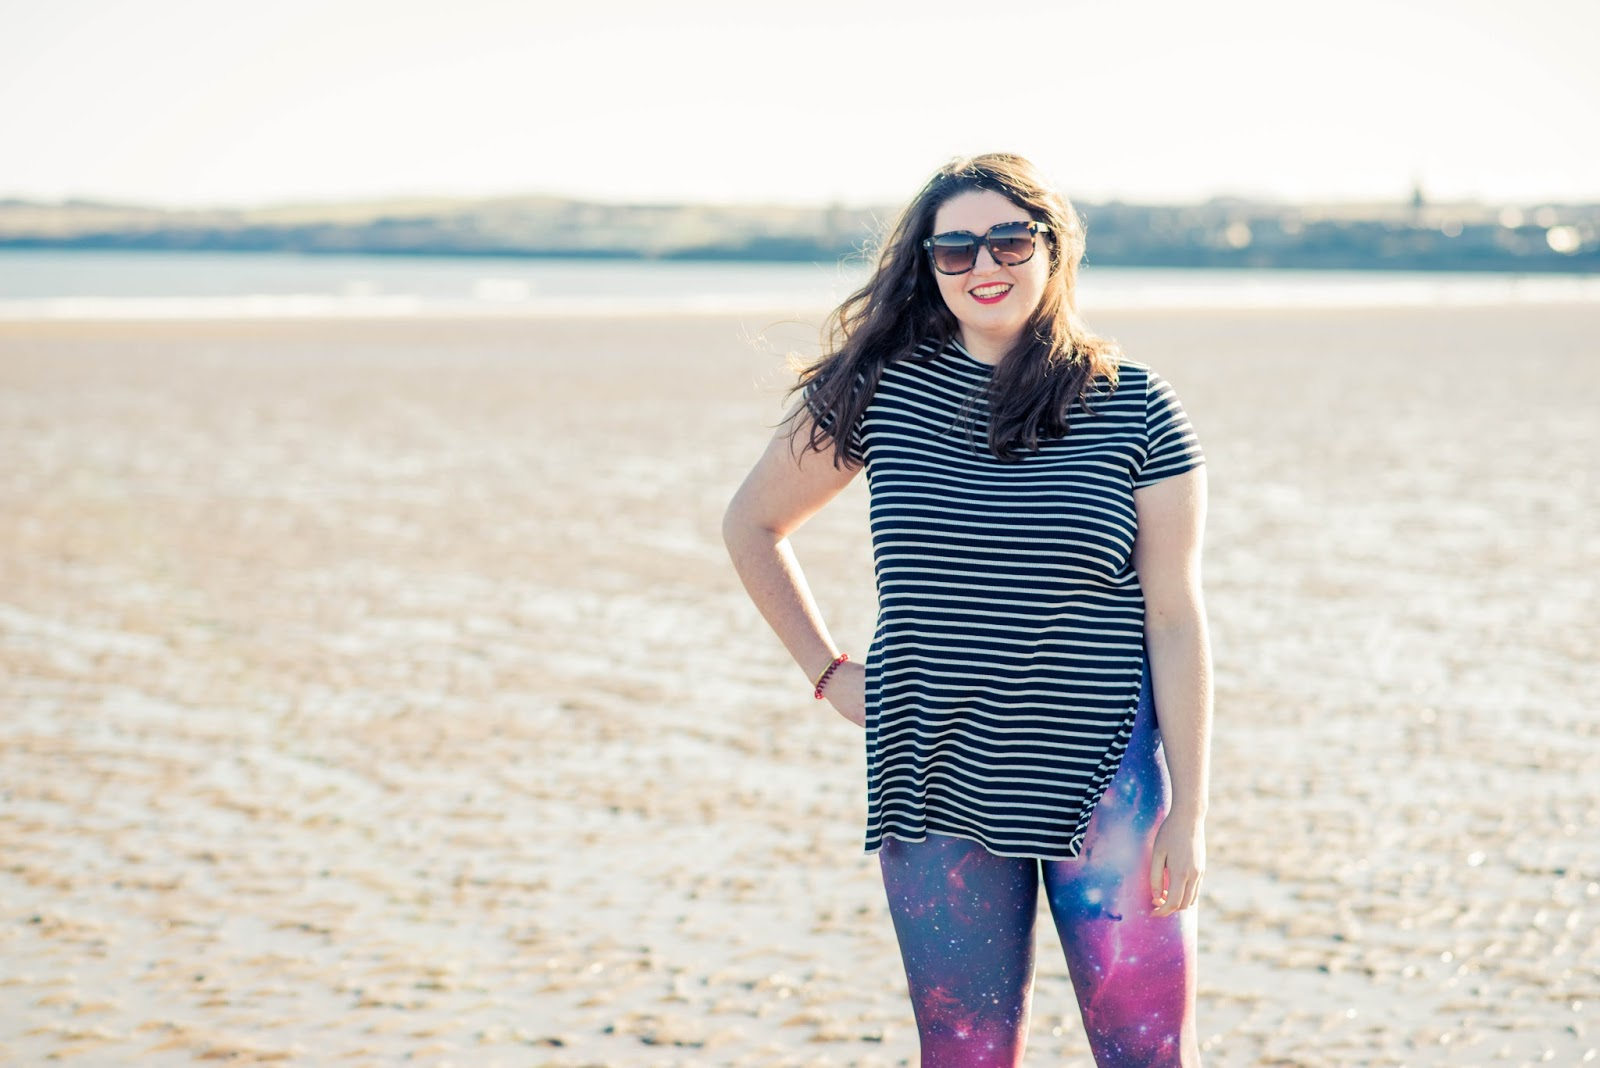 beach ootd black milk clothing purple galaxy leggings lookbook outfit st andrews scotland liquid grain liquidgrain